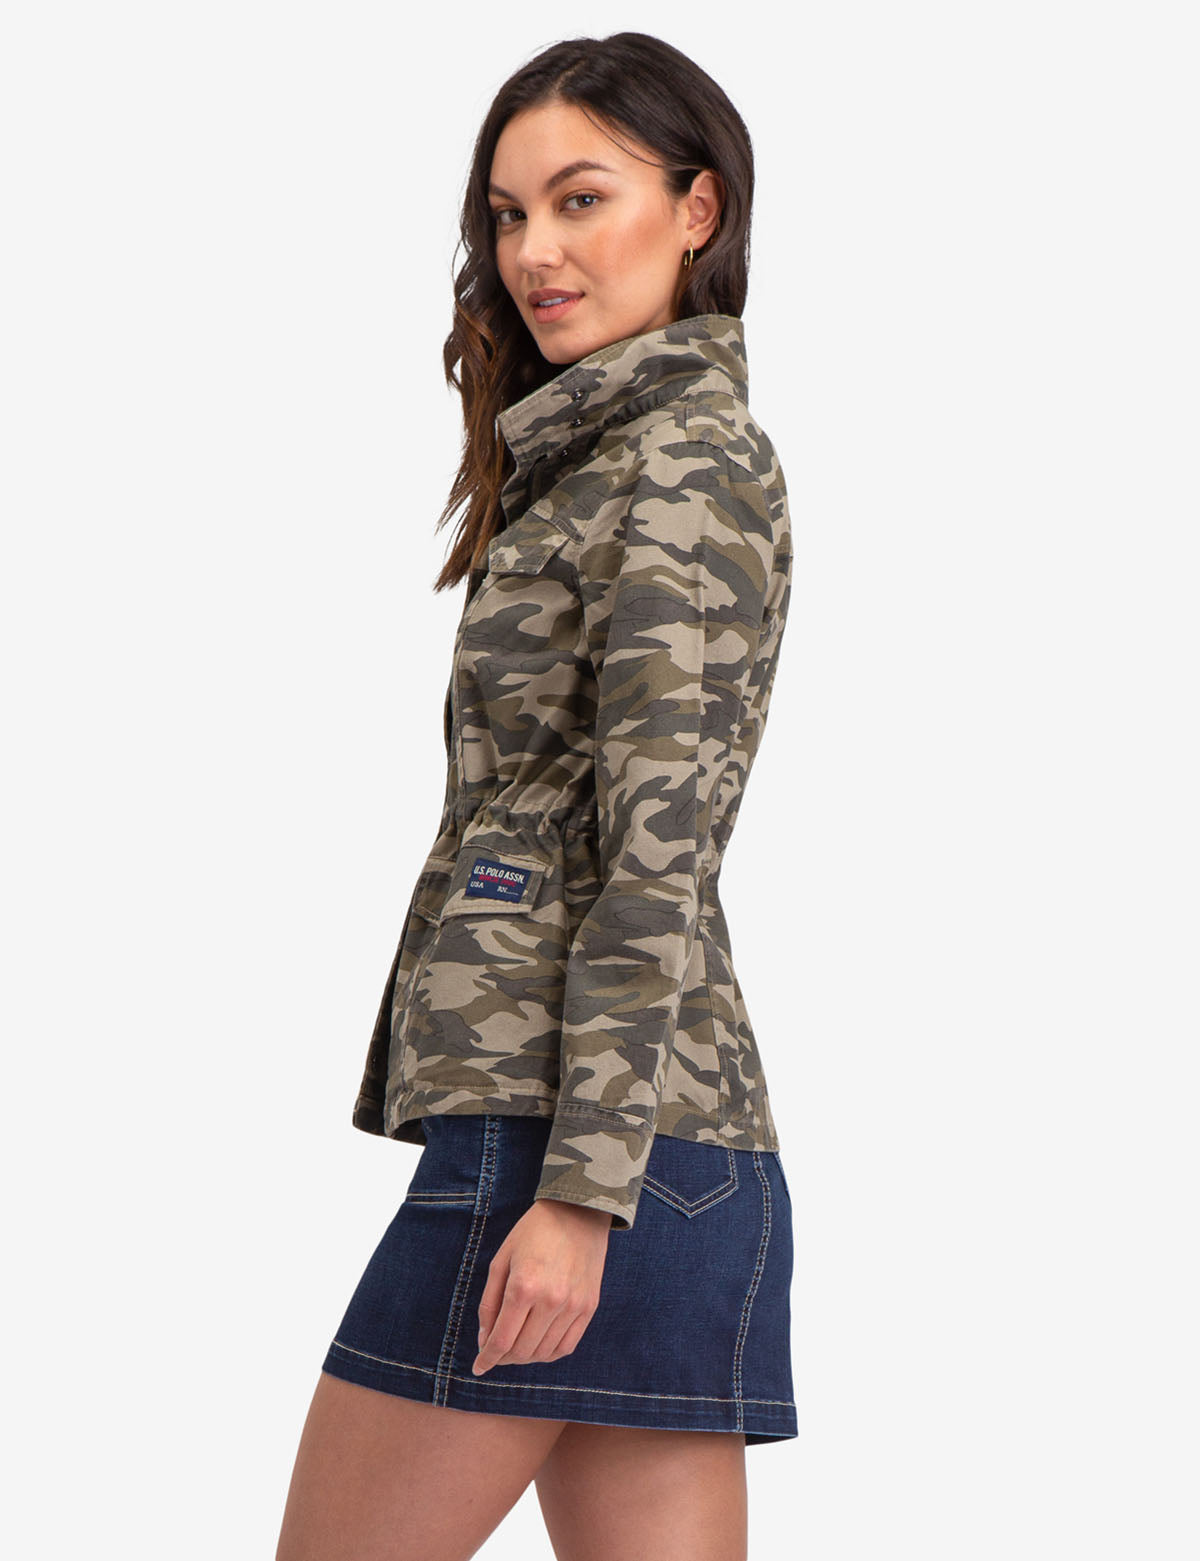 CAMO SAFARI JACKET - U.S. Polo Assn.